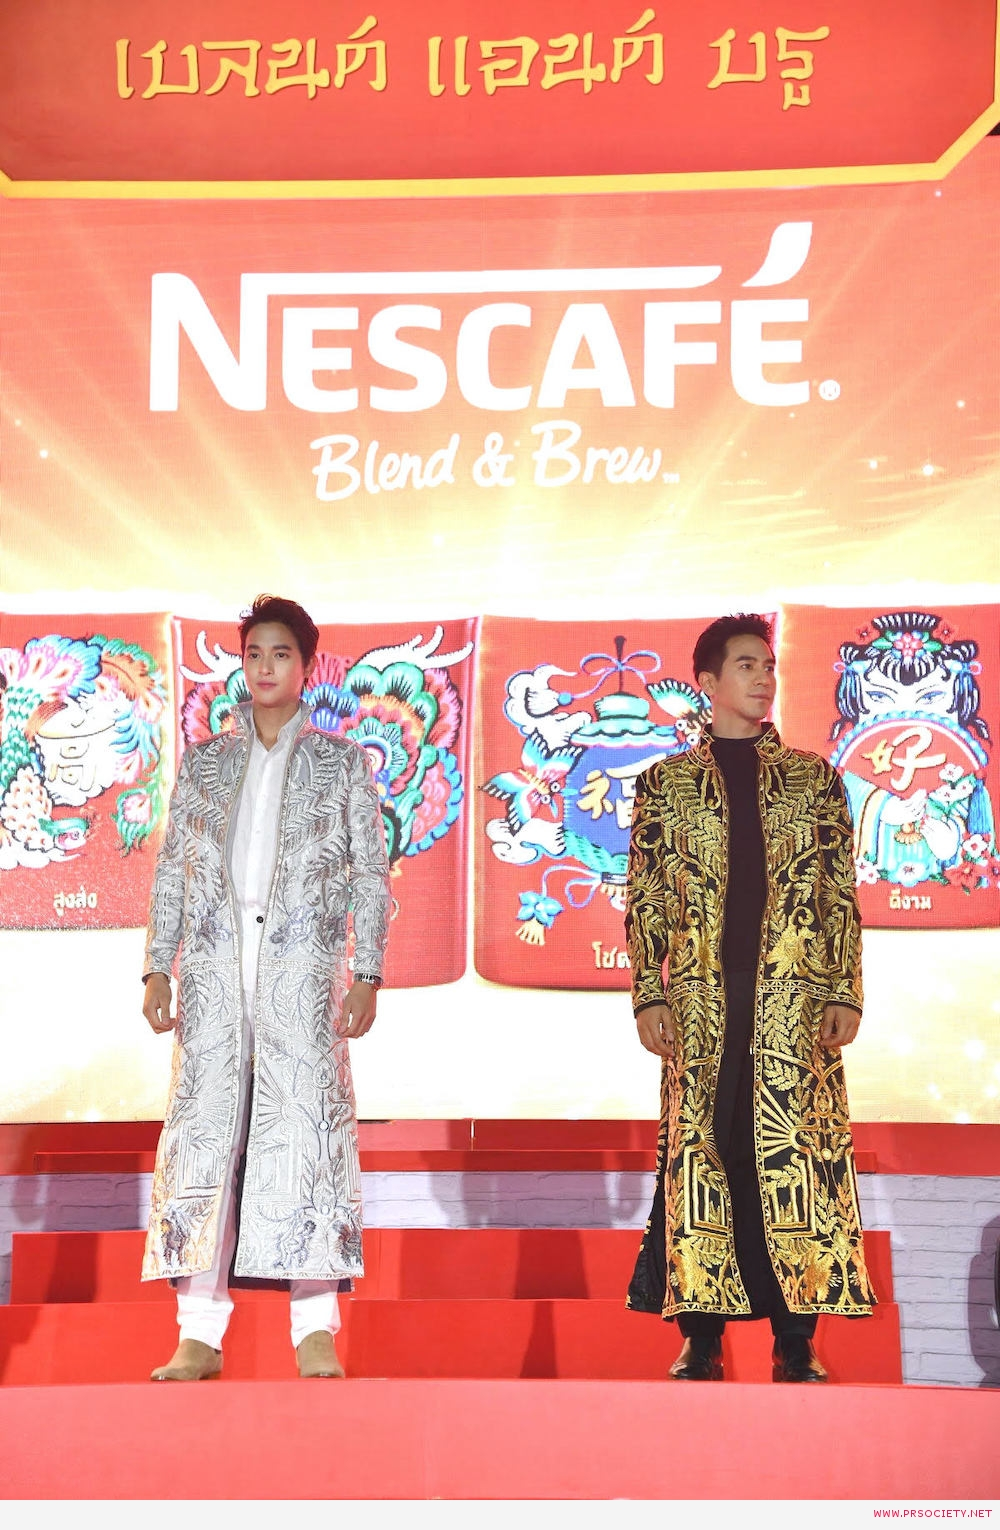 NESCAFE BB CNY 21